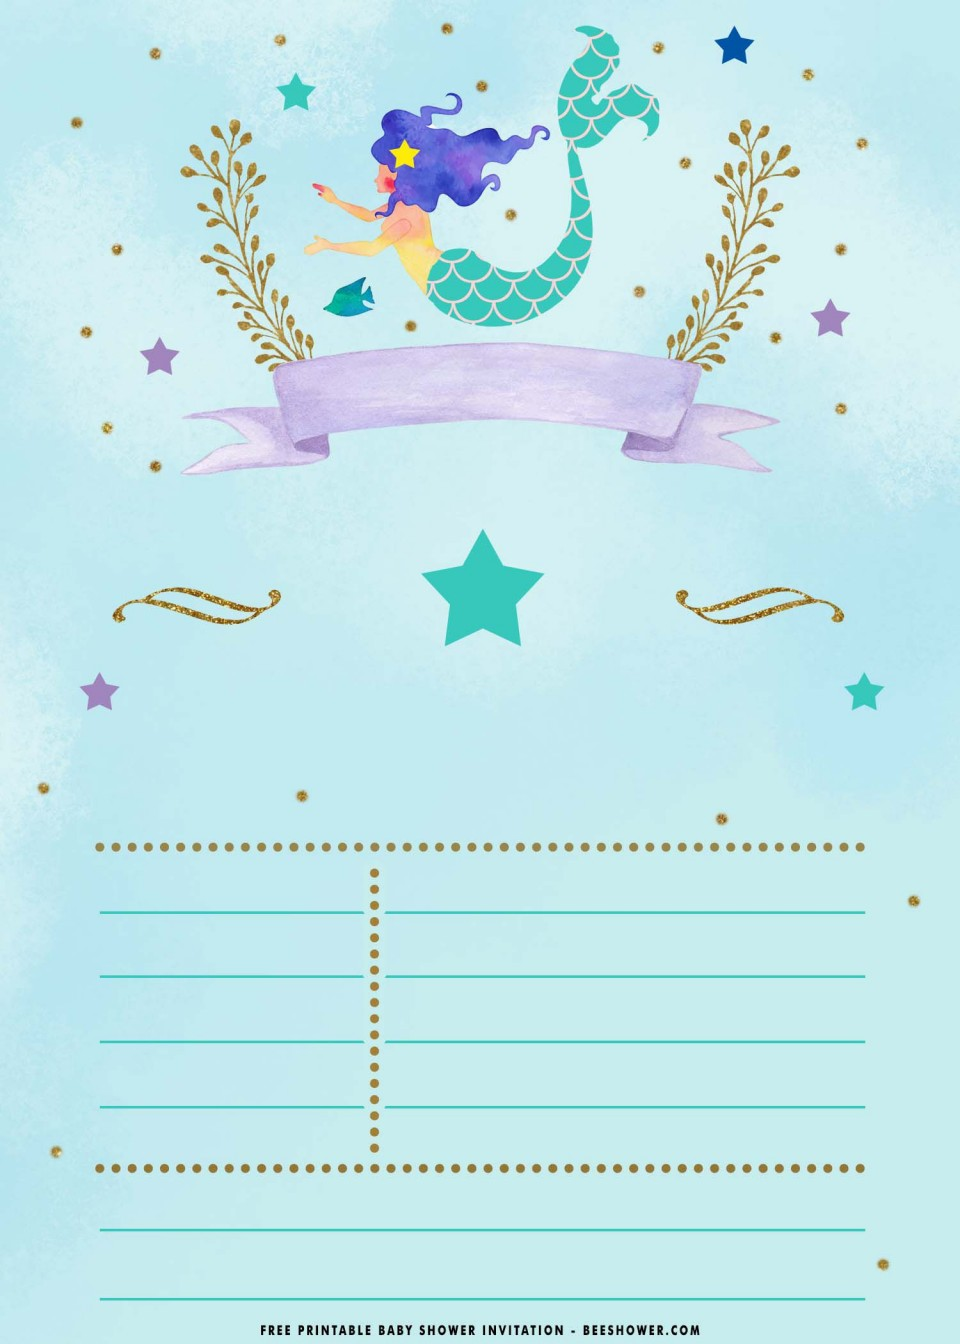 010 Breathtaking Free Mermaid Invitation Template Design  Download Printable Little Birthday Baby Shower960